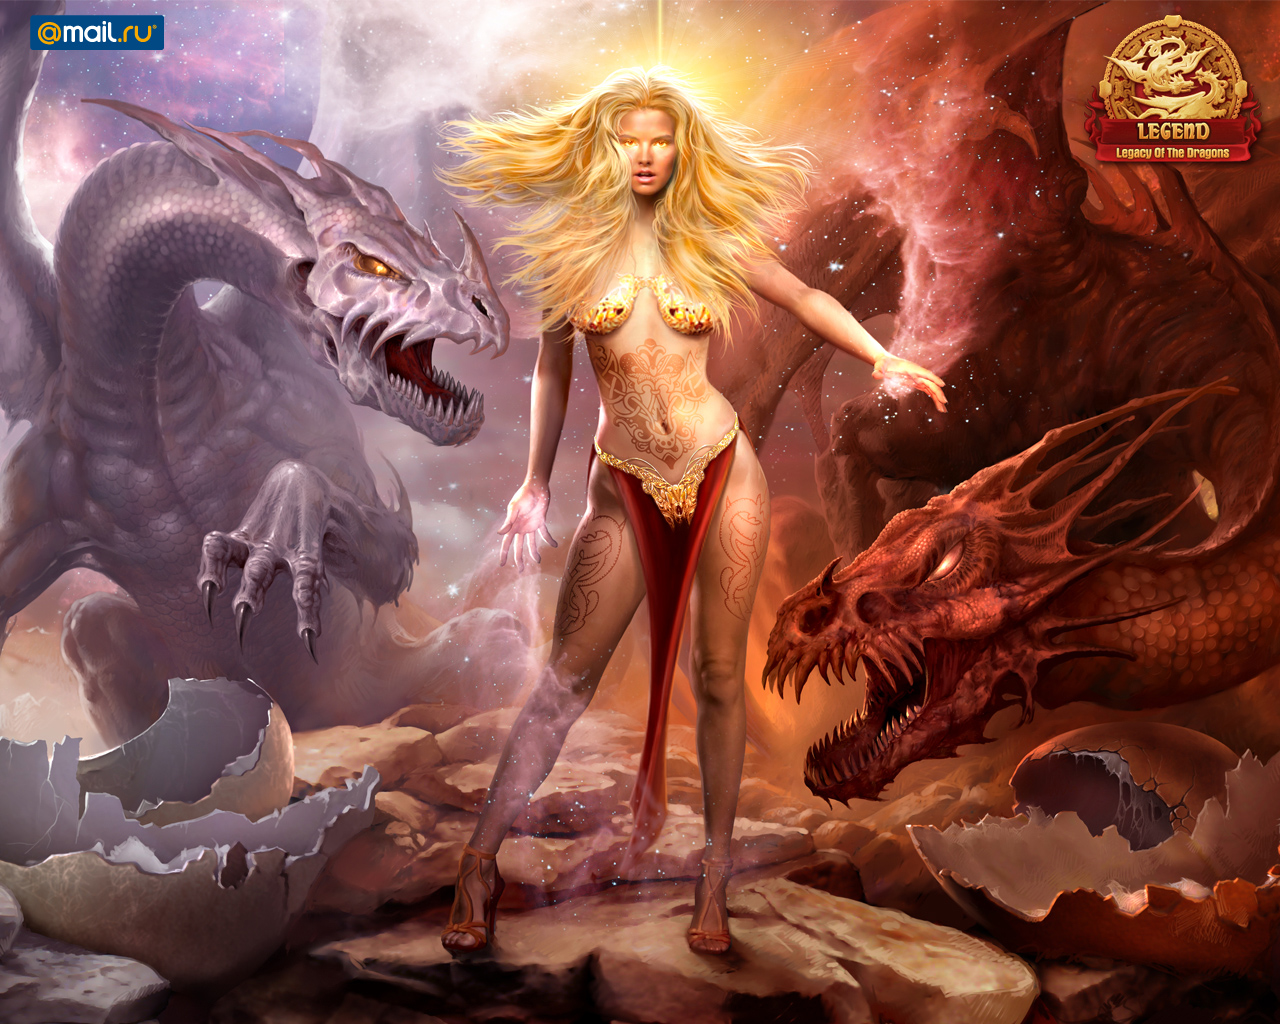 http://2.bp.blogspot.com/-3D5mZsbdkJQ/To-R7nOydpI/AAAAAAAAG2w/_VRIF7Jf66E/s1600/Legend+of+Dragons+Wallpaper+1280x1024.jpg